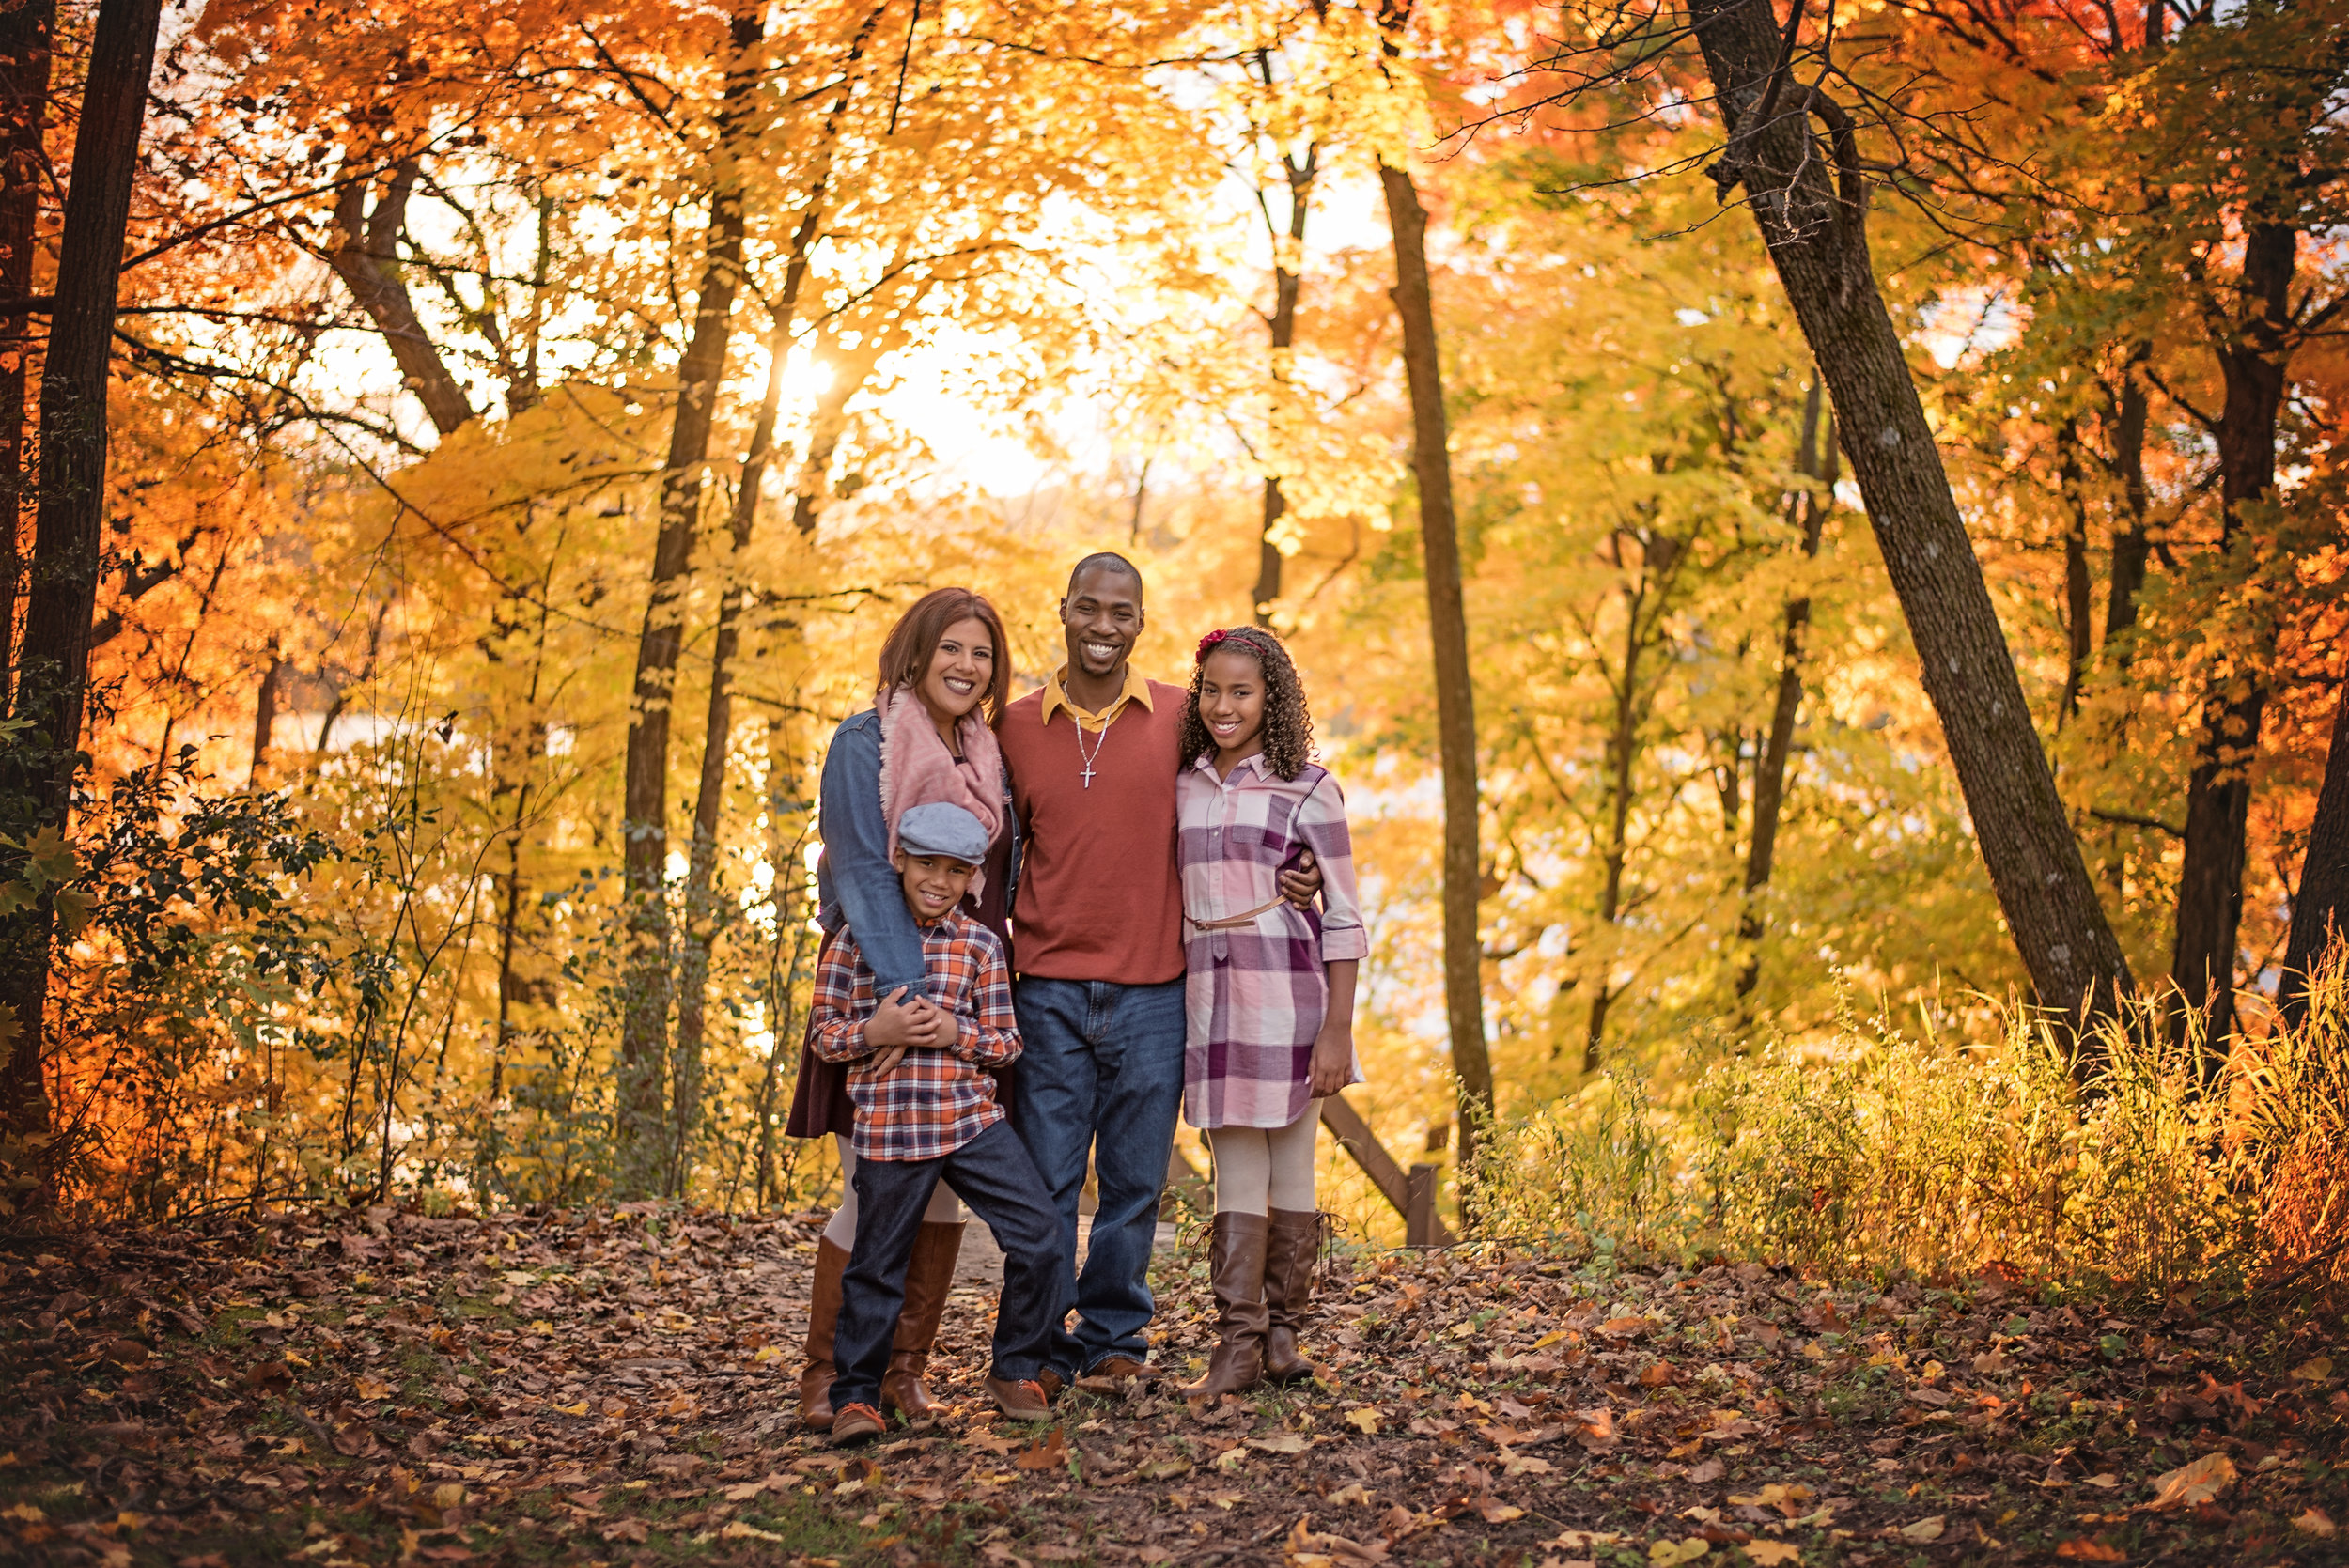 Burnsville_Family_Photographer8.jpg